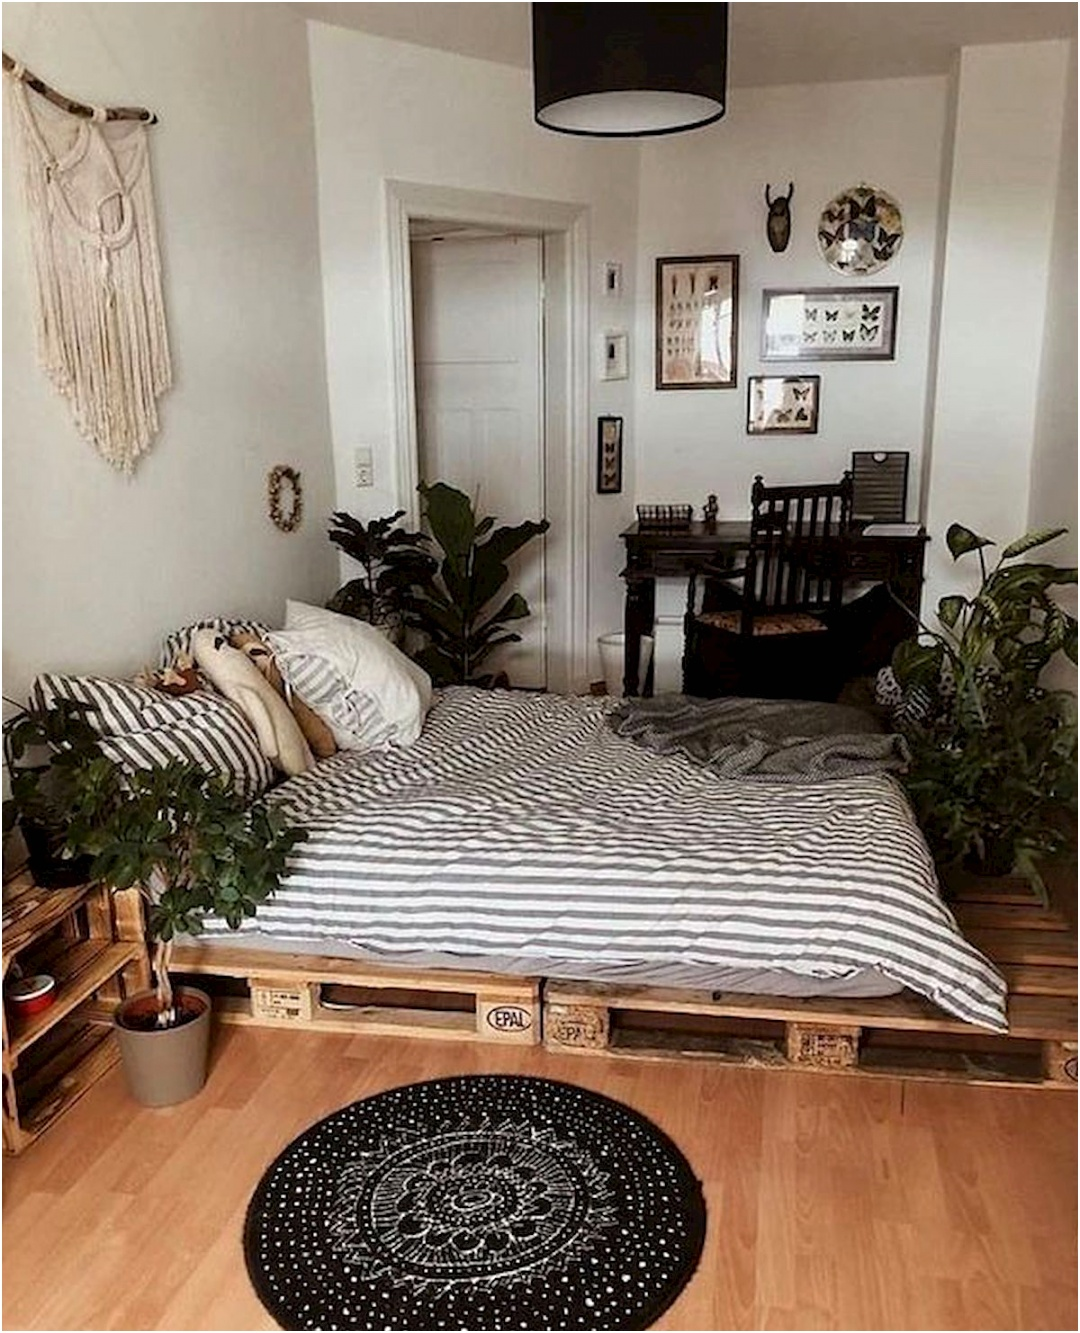 33 Awesome College Bedroom Decor Ideas And Remodel 18